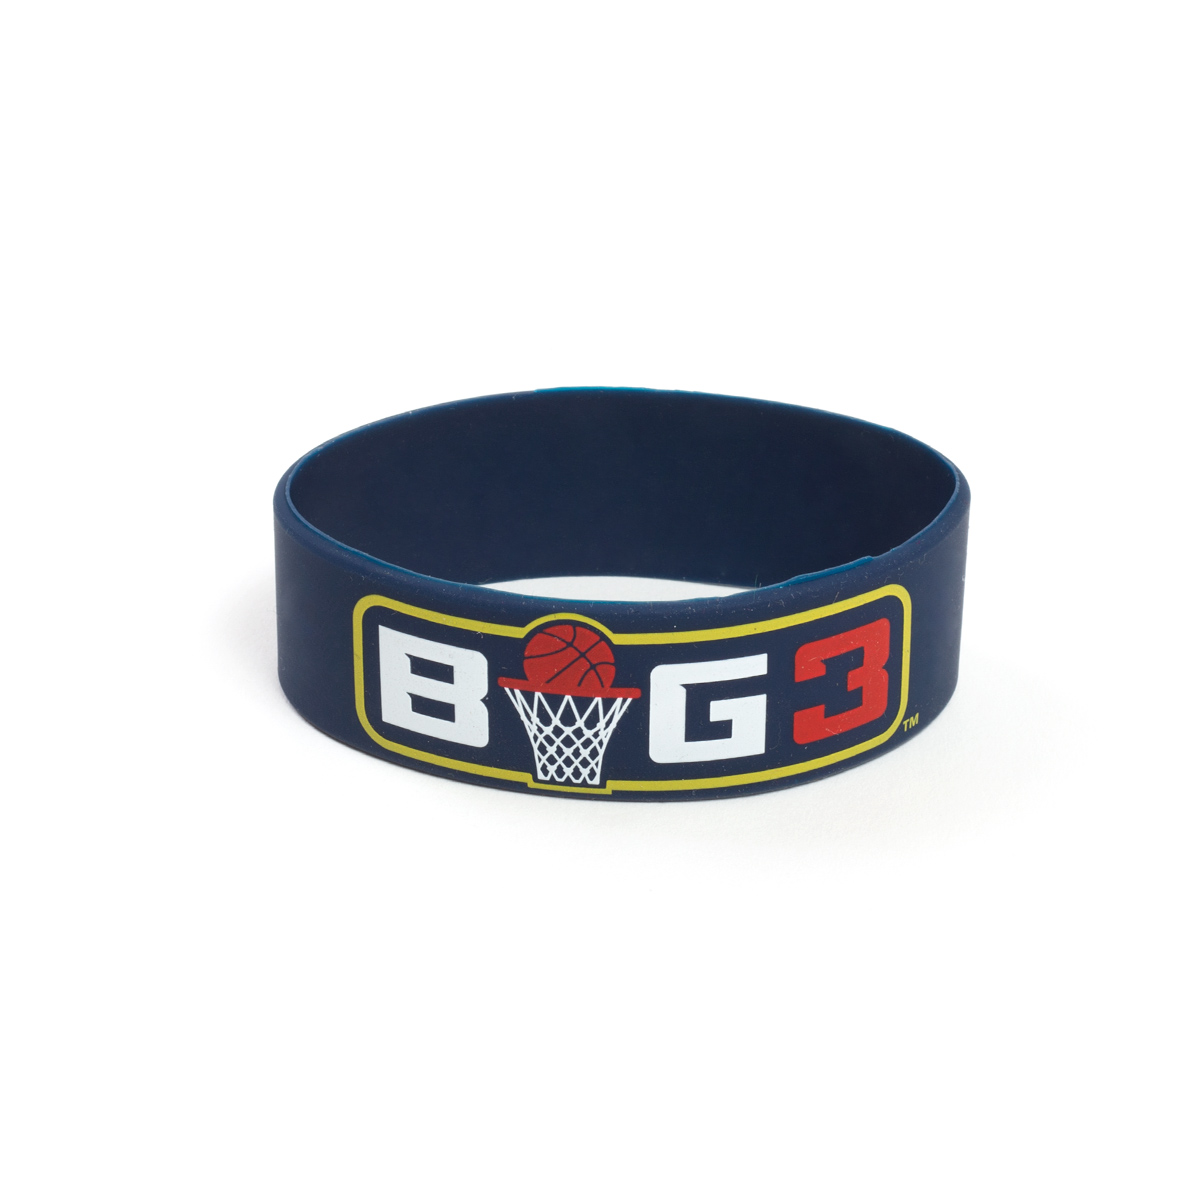 BLUE BIG3 RUBBER BRACELET